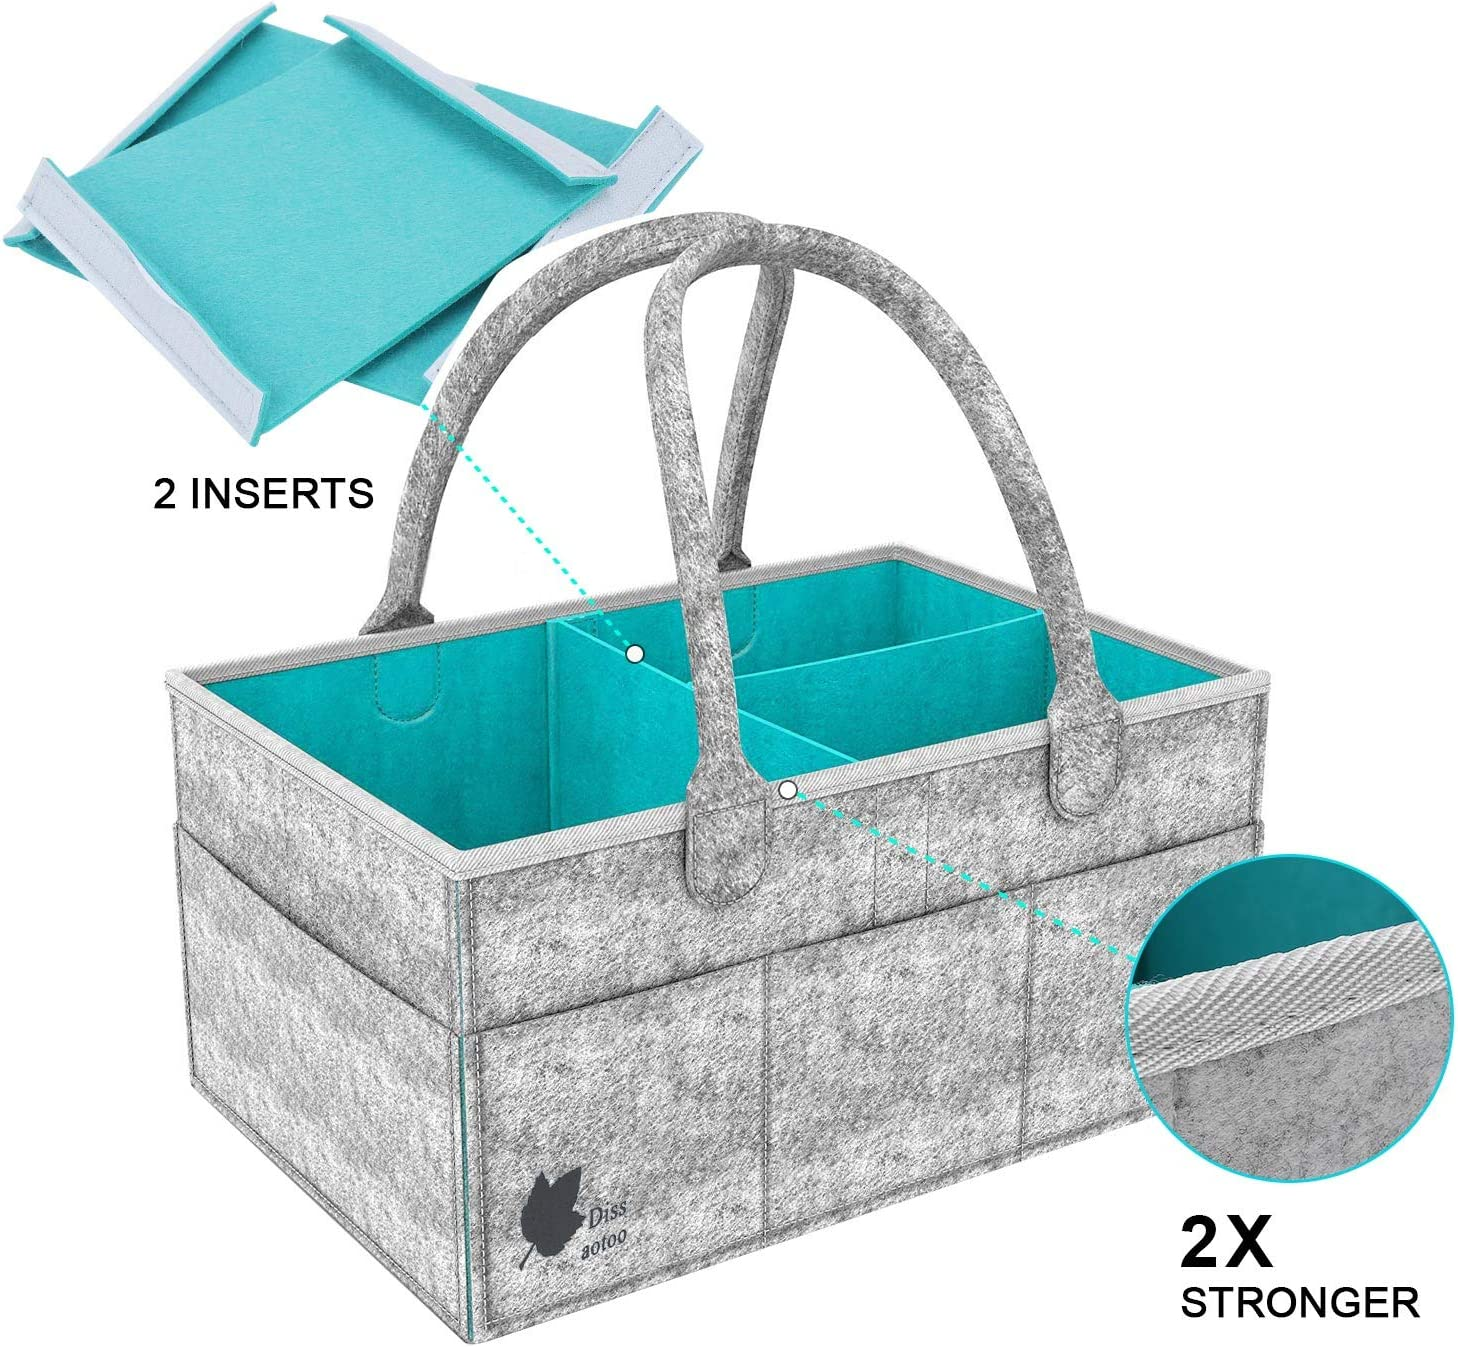 Baby Diaper Caddy Portable Nursery Storage Bin Car Organizer With Changeable Compartments Nappy Bags Insert Organizer Storage for Diapers and Baby Wipes